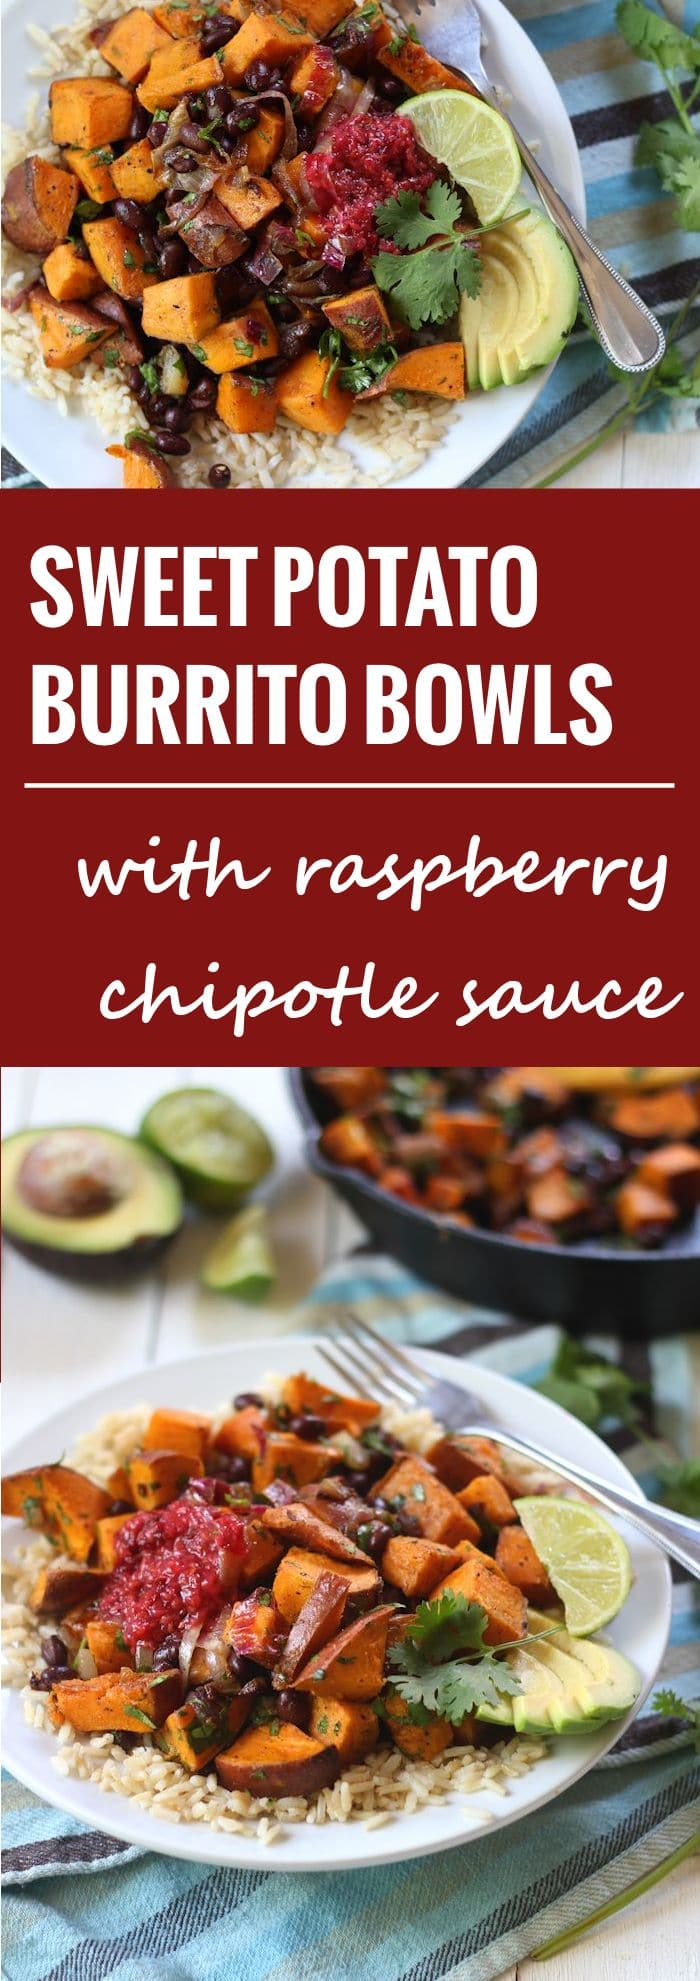 Black Bean Sweet Potato Burrito Bowls with Raspberry Chipotle Sauce